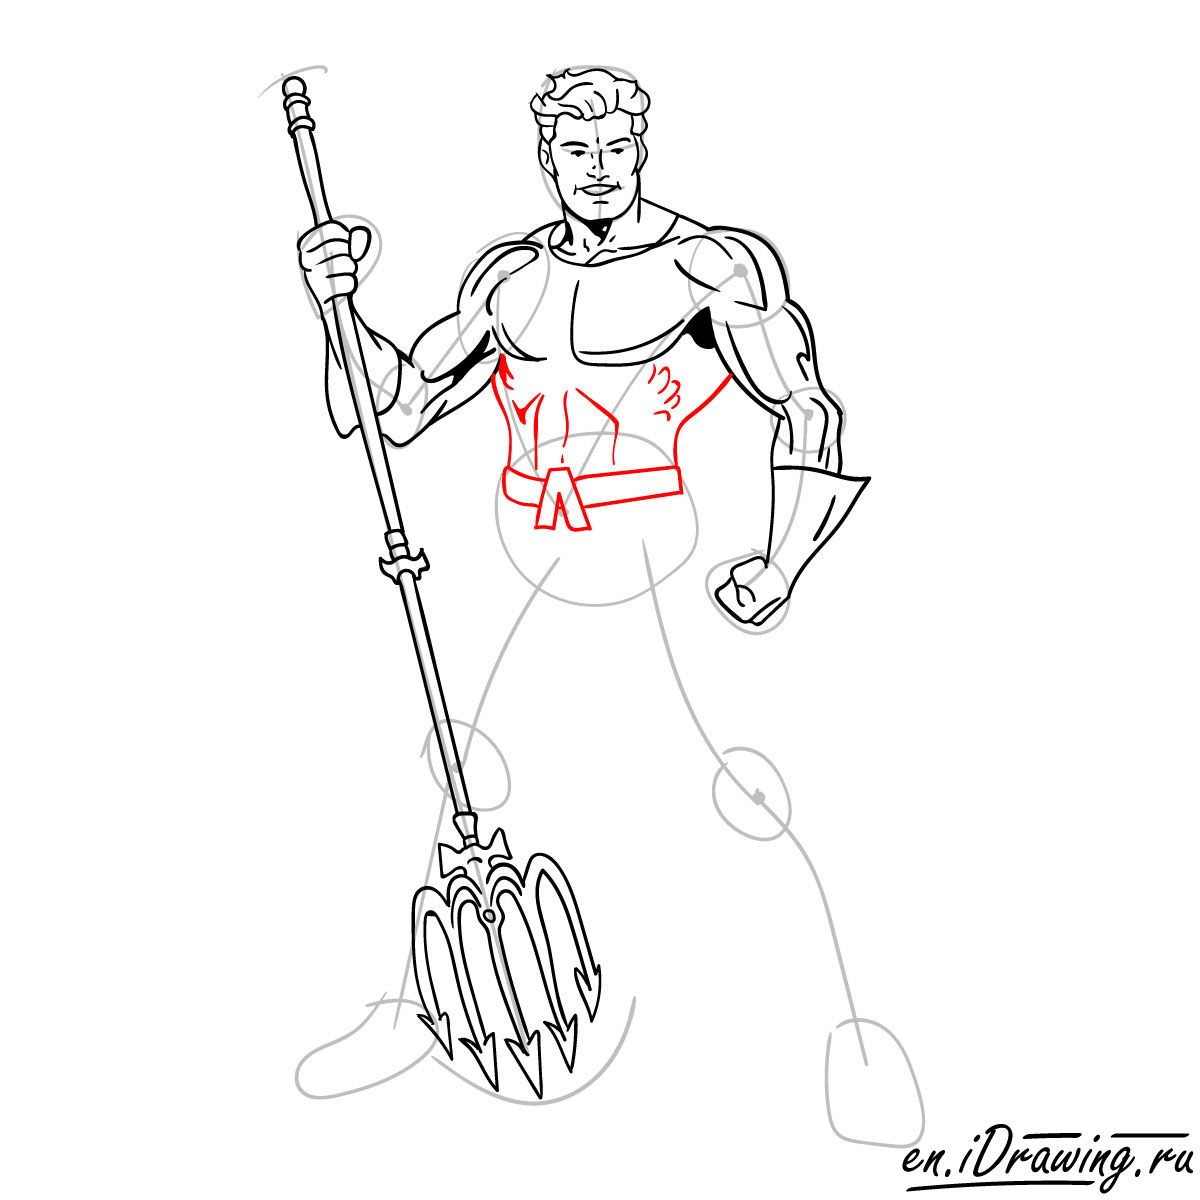 How to draw Aquaman from cartoons and comic books - step 12